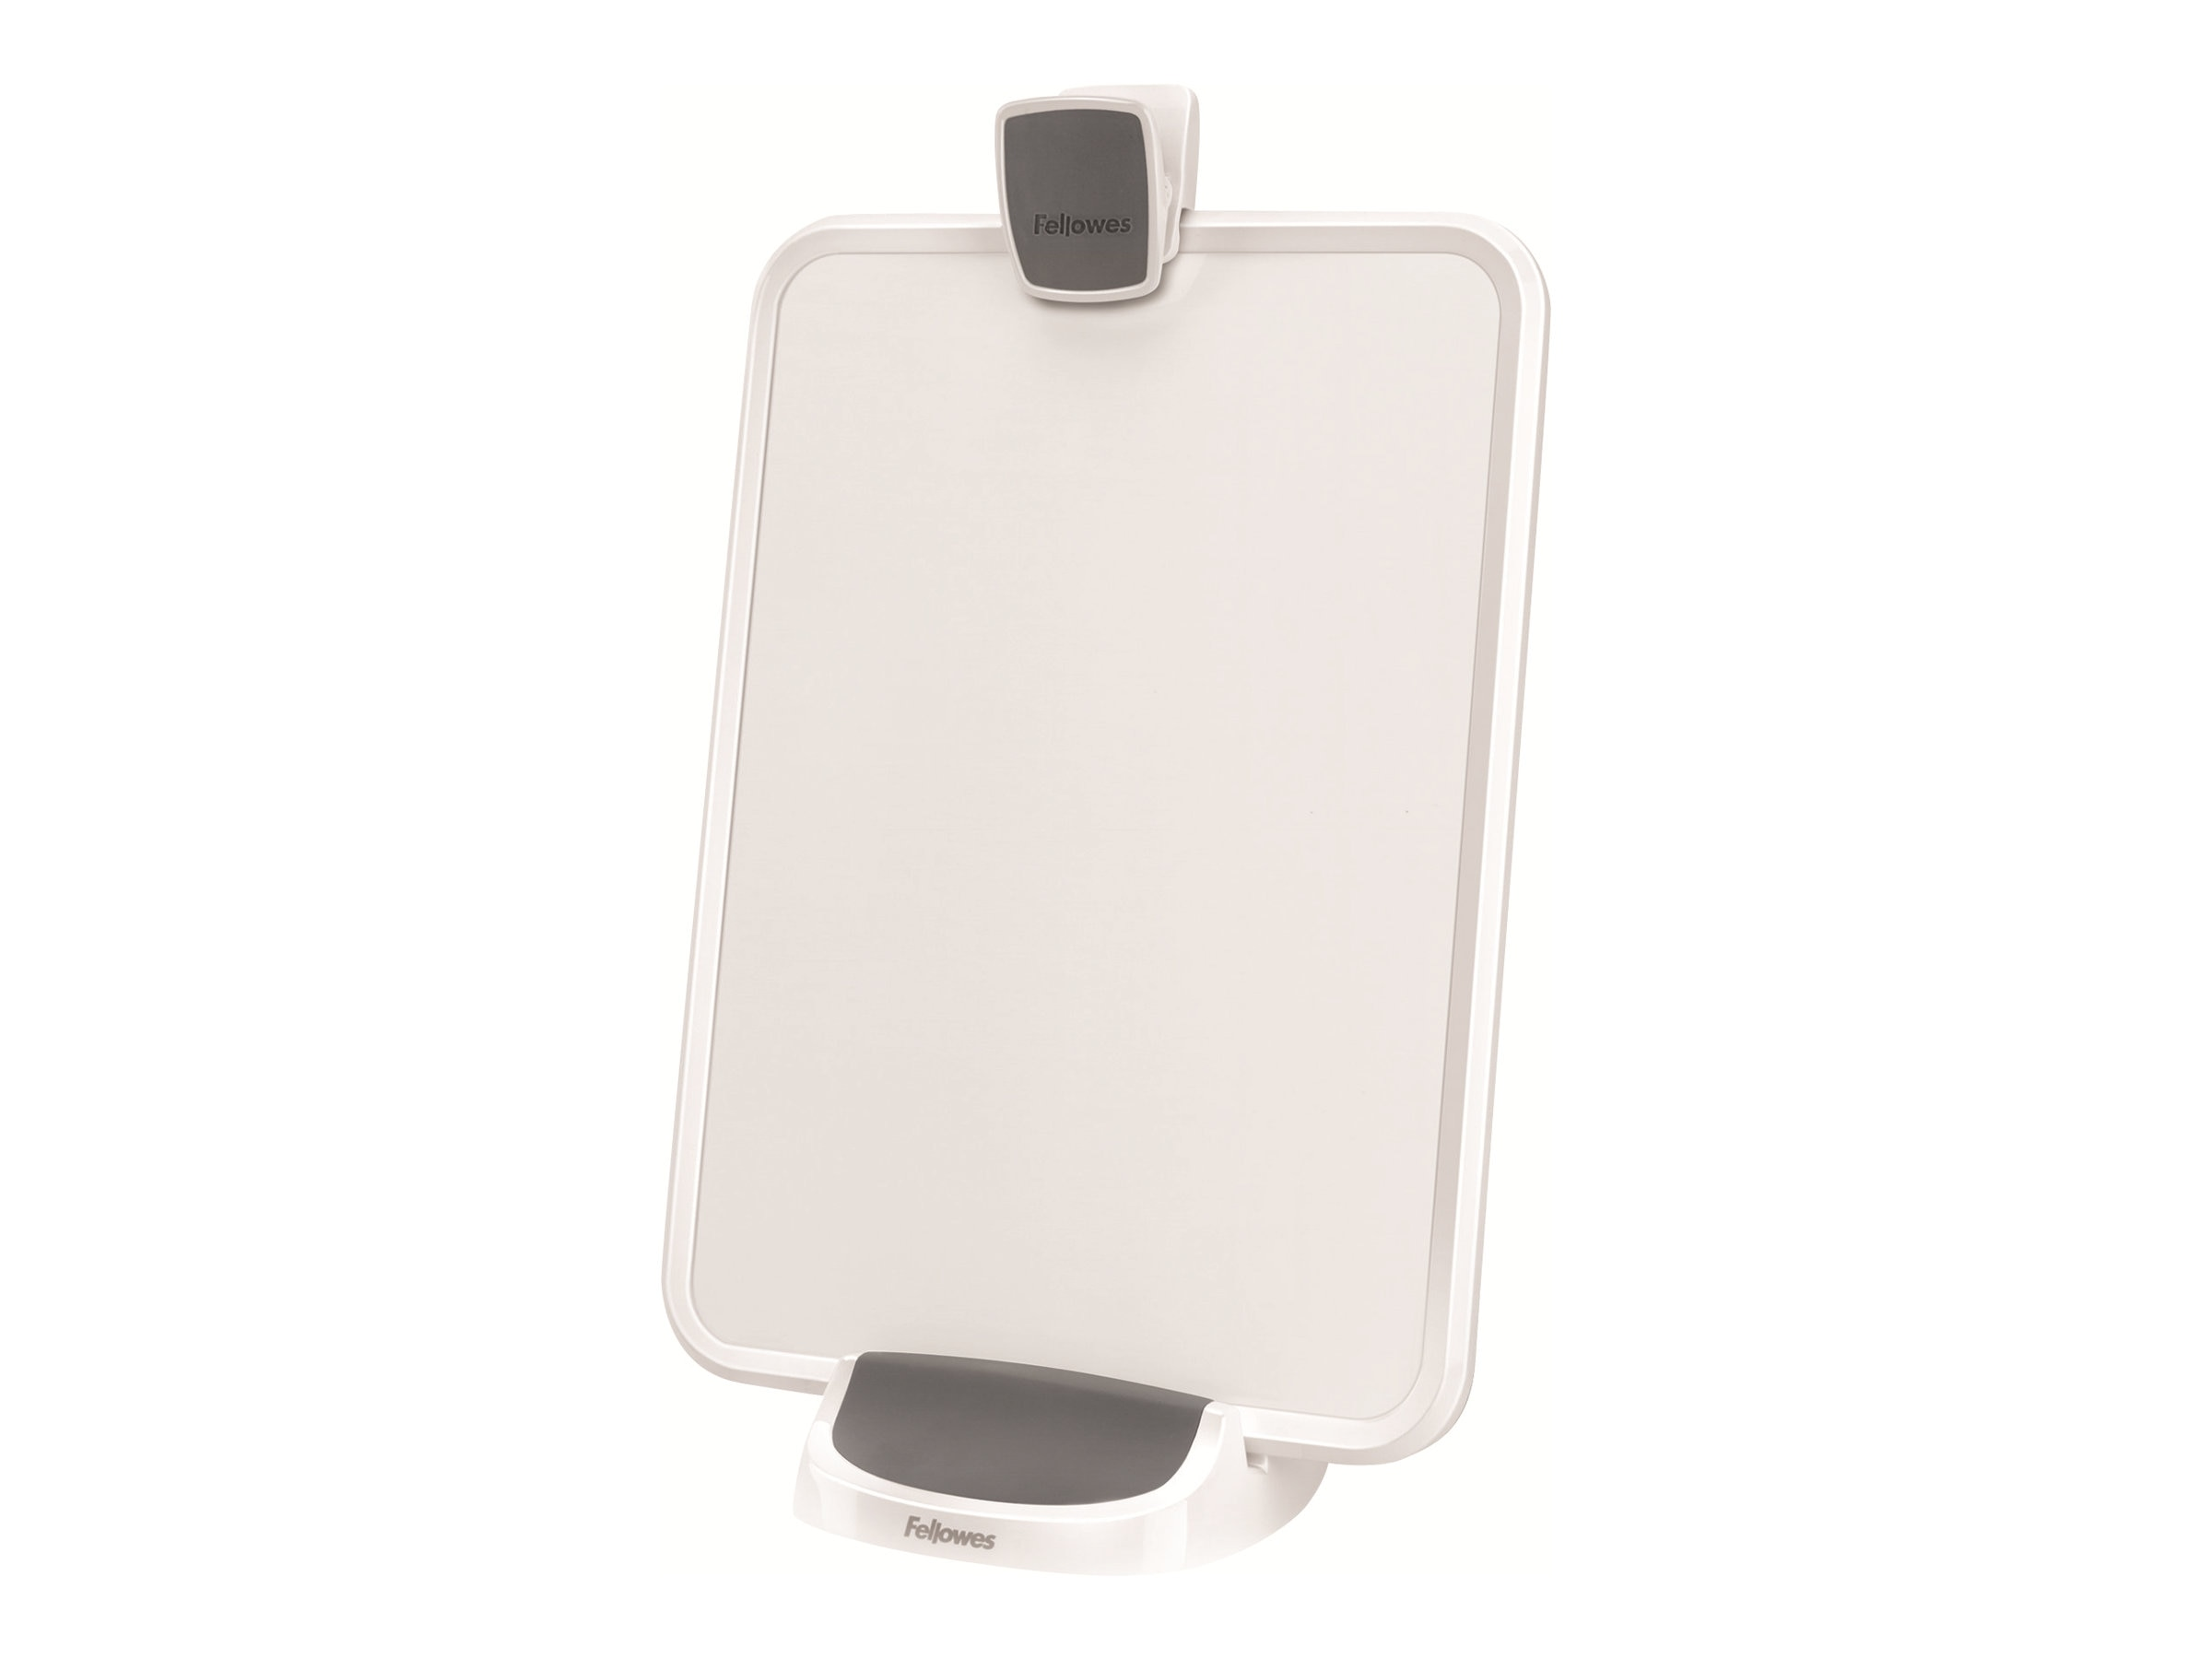 Fellowes I-Spire Series 3 x 1 Document Lift Design Board & Clipboard, 9311501, 15612819, Ergonomic Products